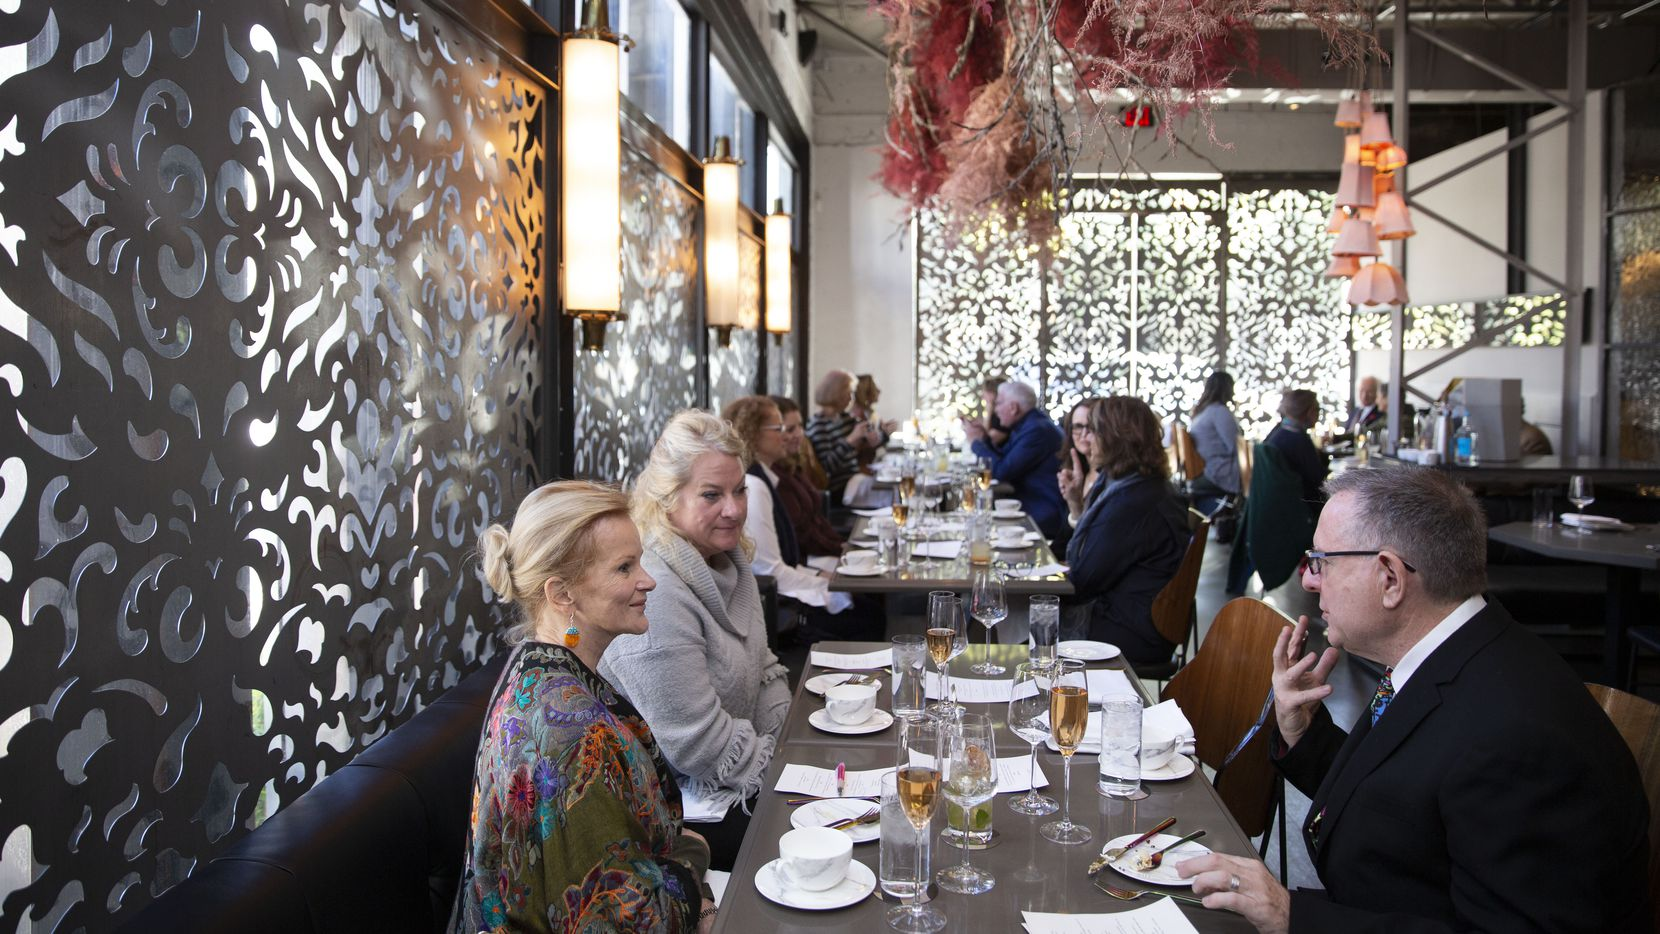 The dining room at Grange Hall, during the Dallas Morning News' EatDrinkInsider event last month.